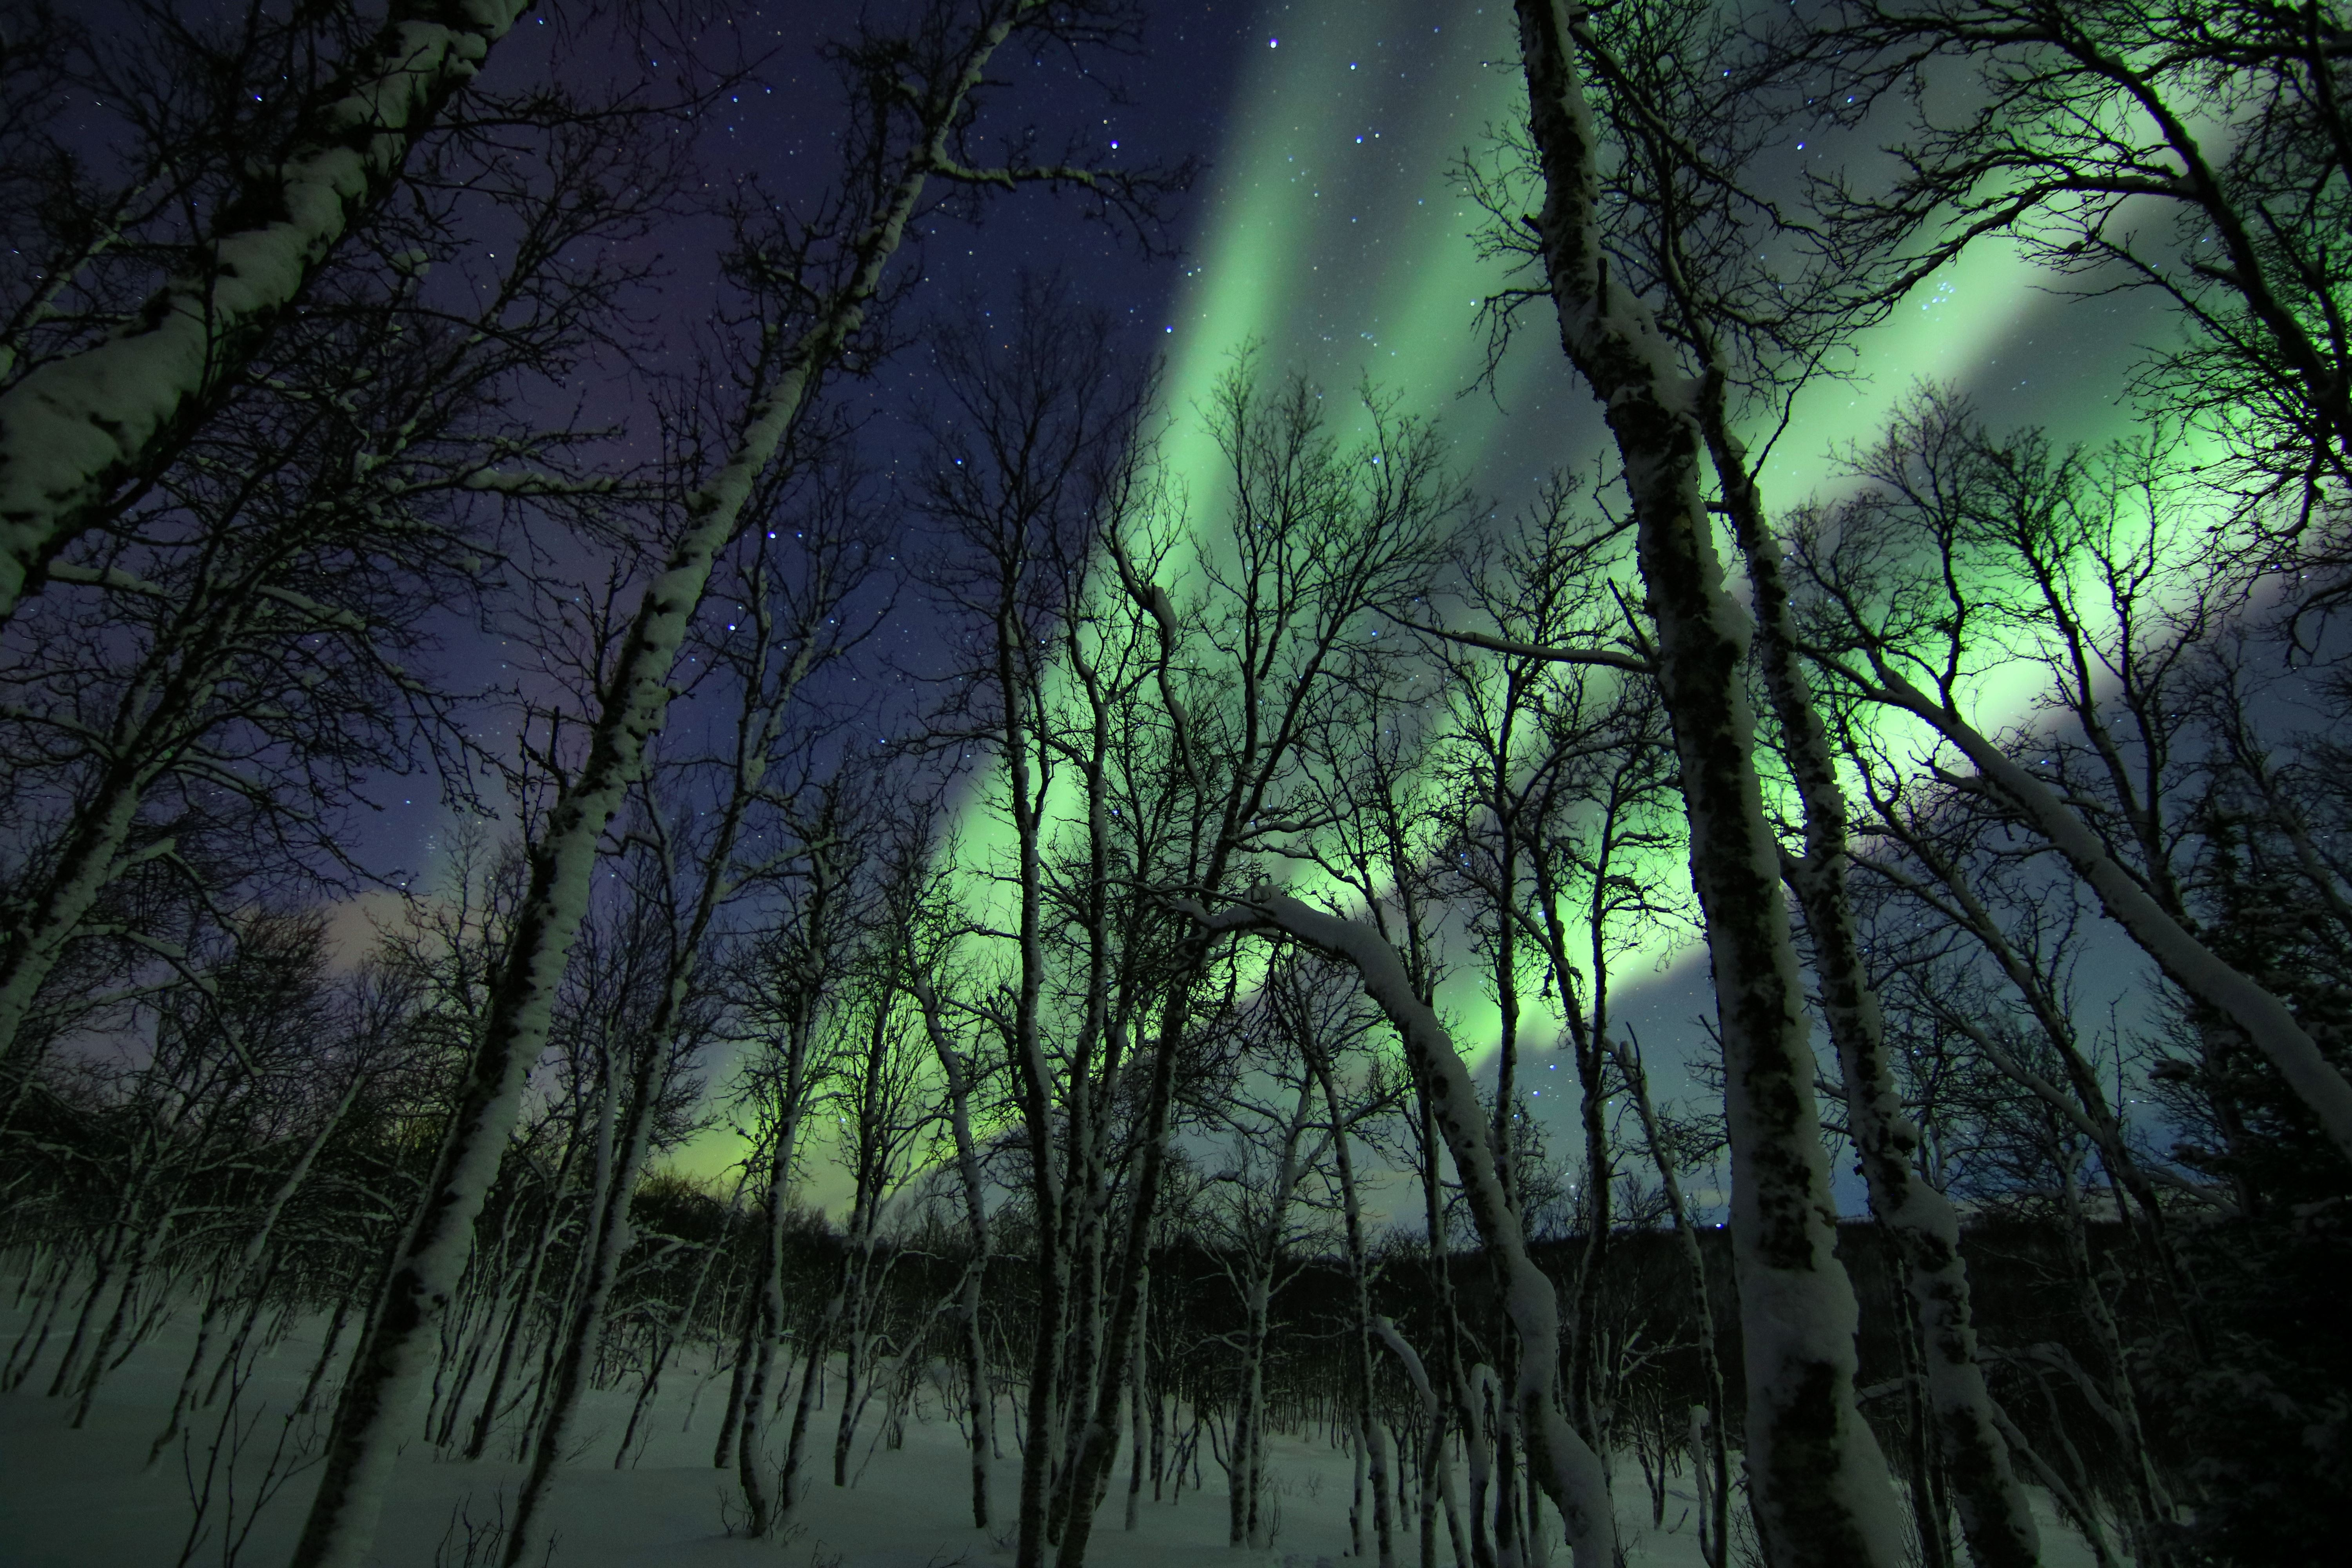 !SPECIAL OFFER! Northern Lights OVERNIGHT at Polar Cabin with Snowshoeing/Hiking -All included- (2-6 people) -Polar Cabin